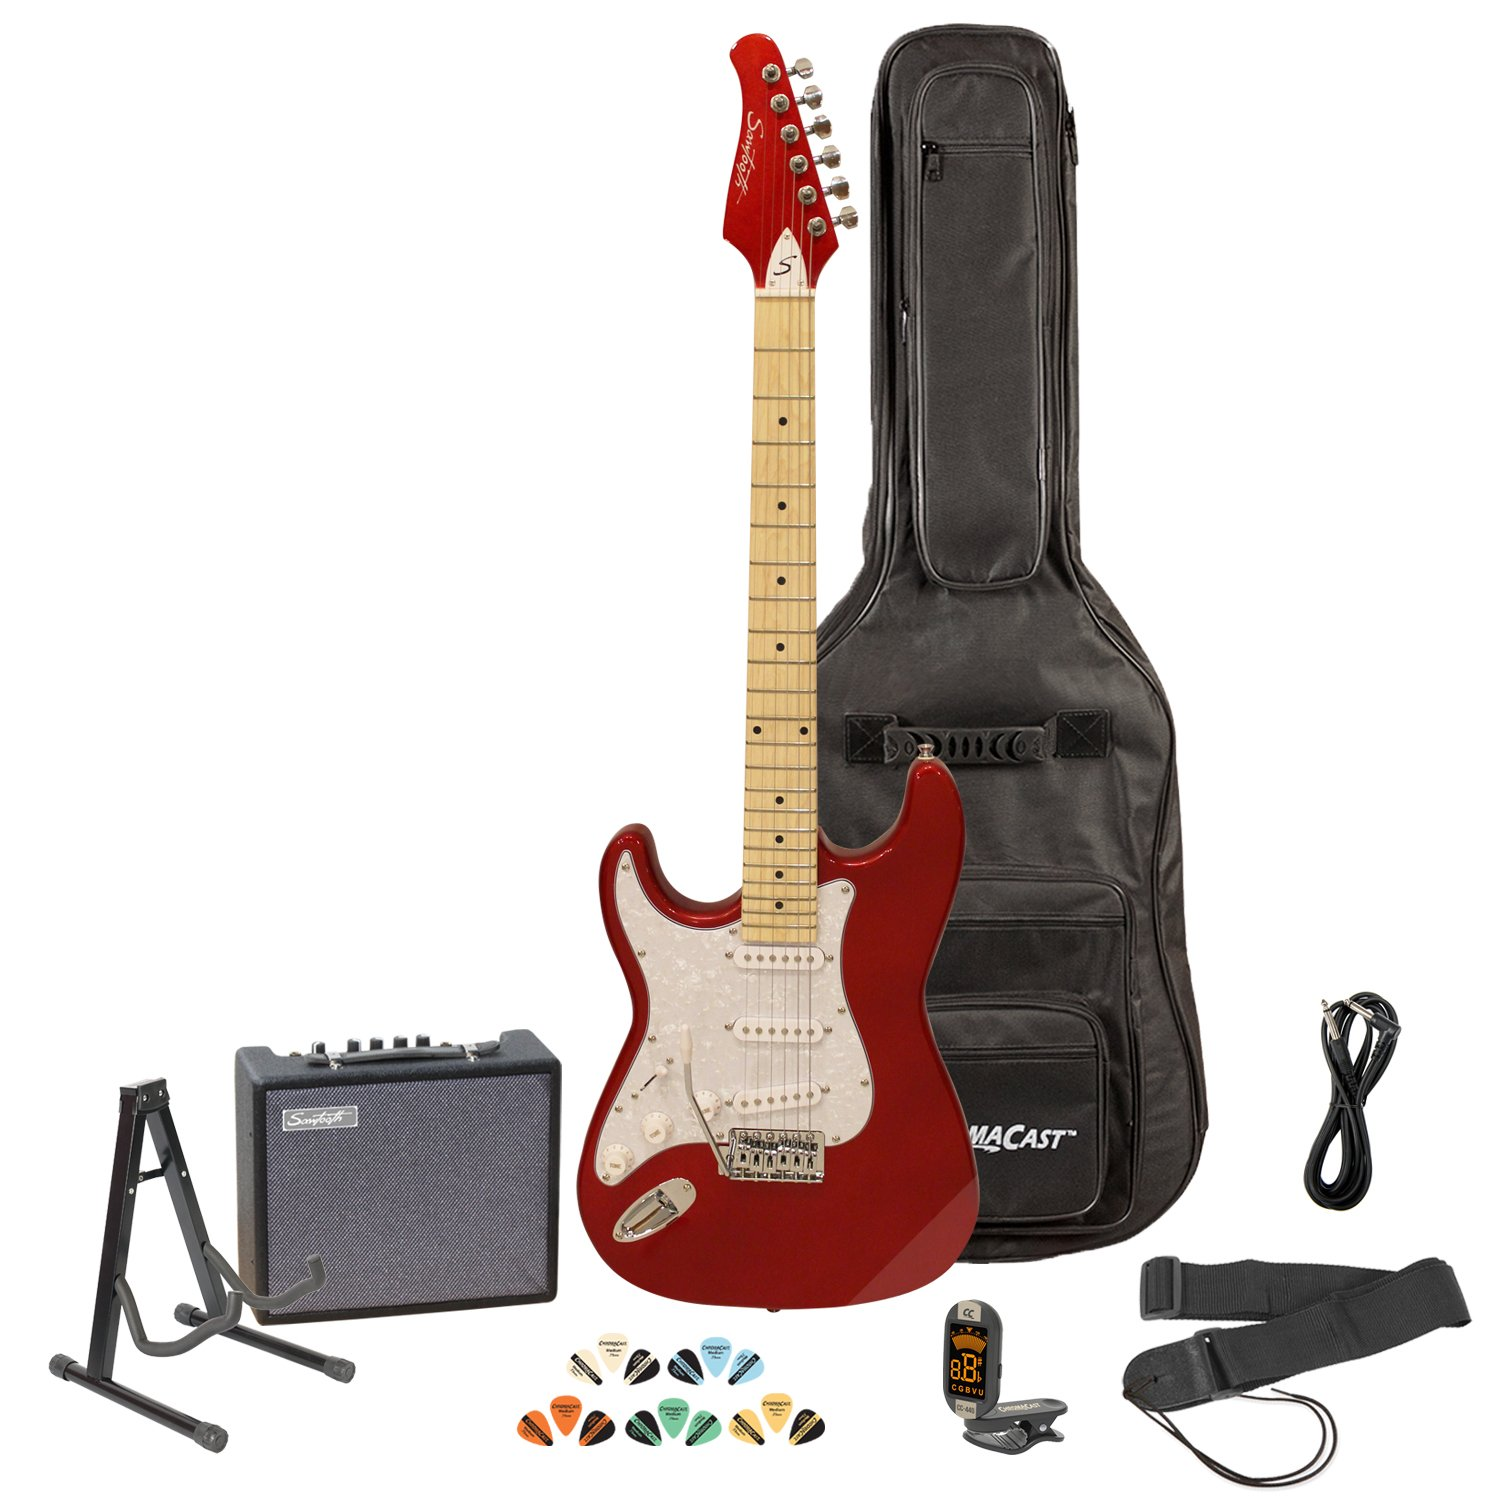 Sawtooth ST-ES-LH-CARP-KIT-3 Left Handed Electric Guitar in Candy Apple Red with White Pickguard, Lesson, Gig Bag, Stand, Cable, Picks, Tuner, Strap, Amplifier by Sawtooth